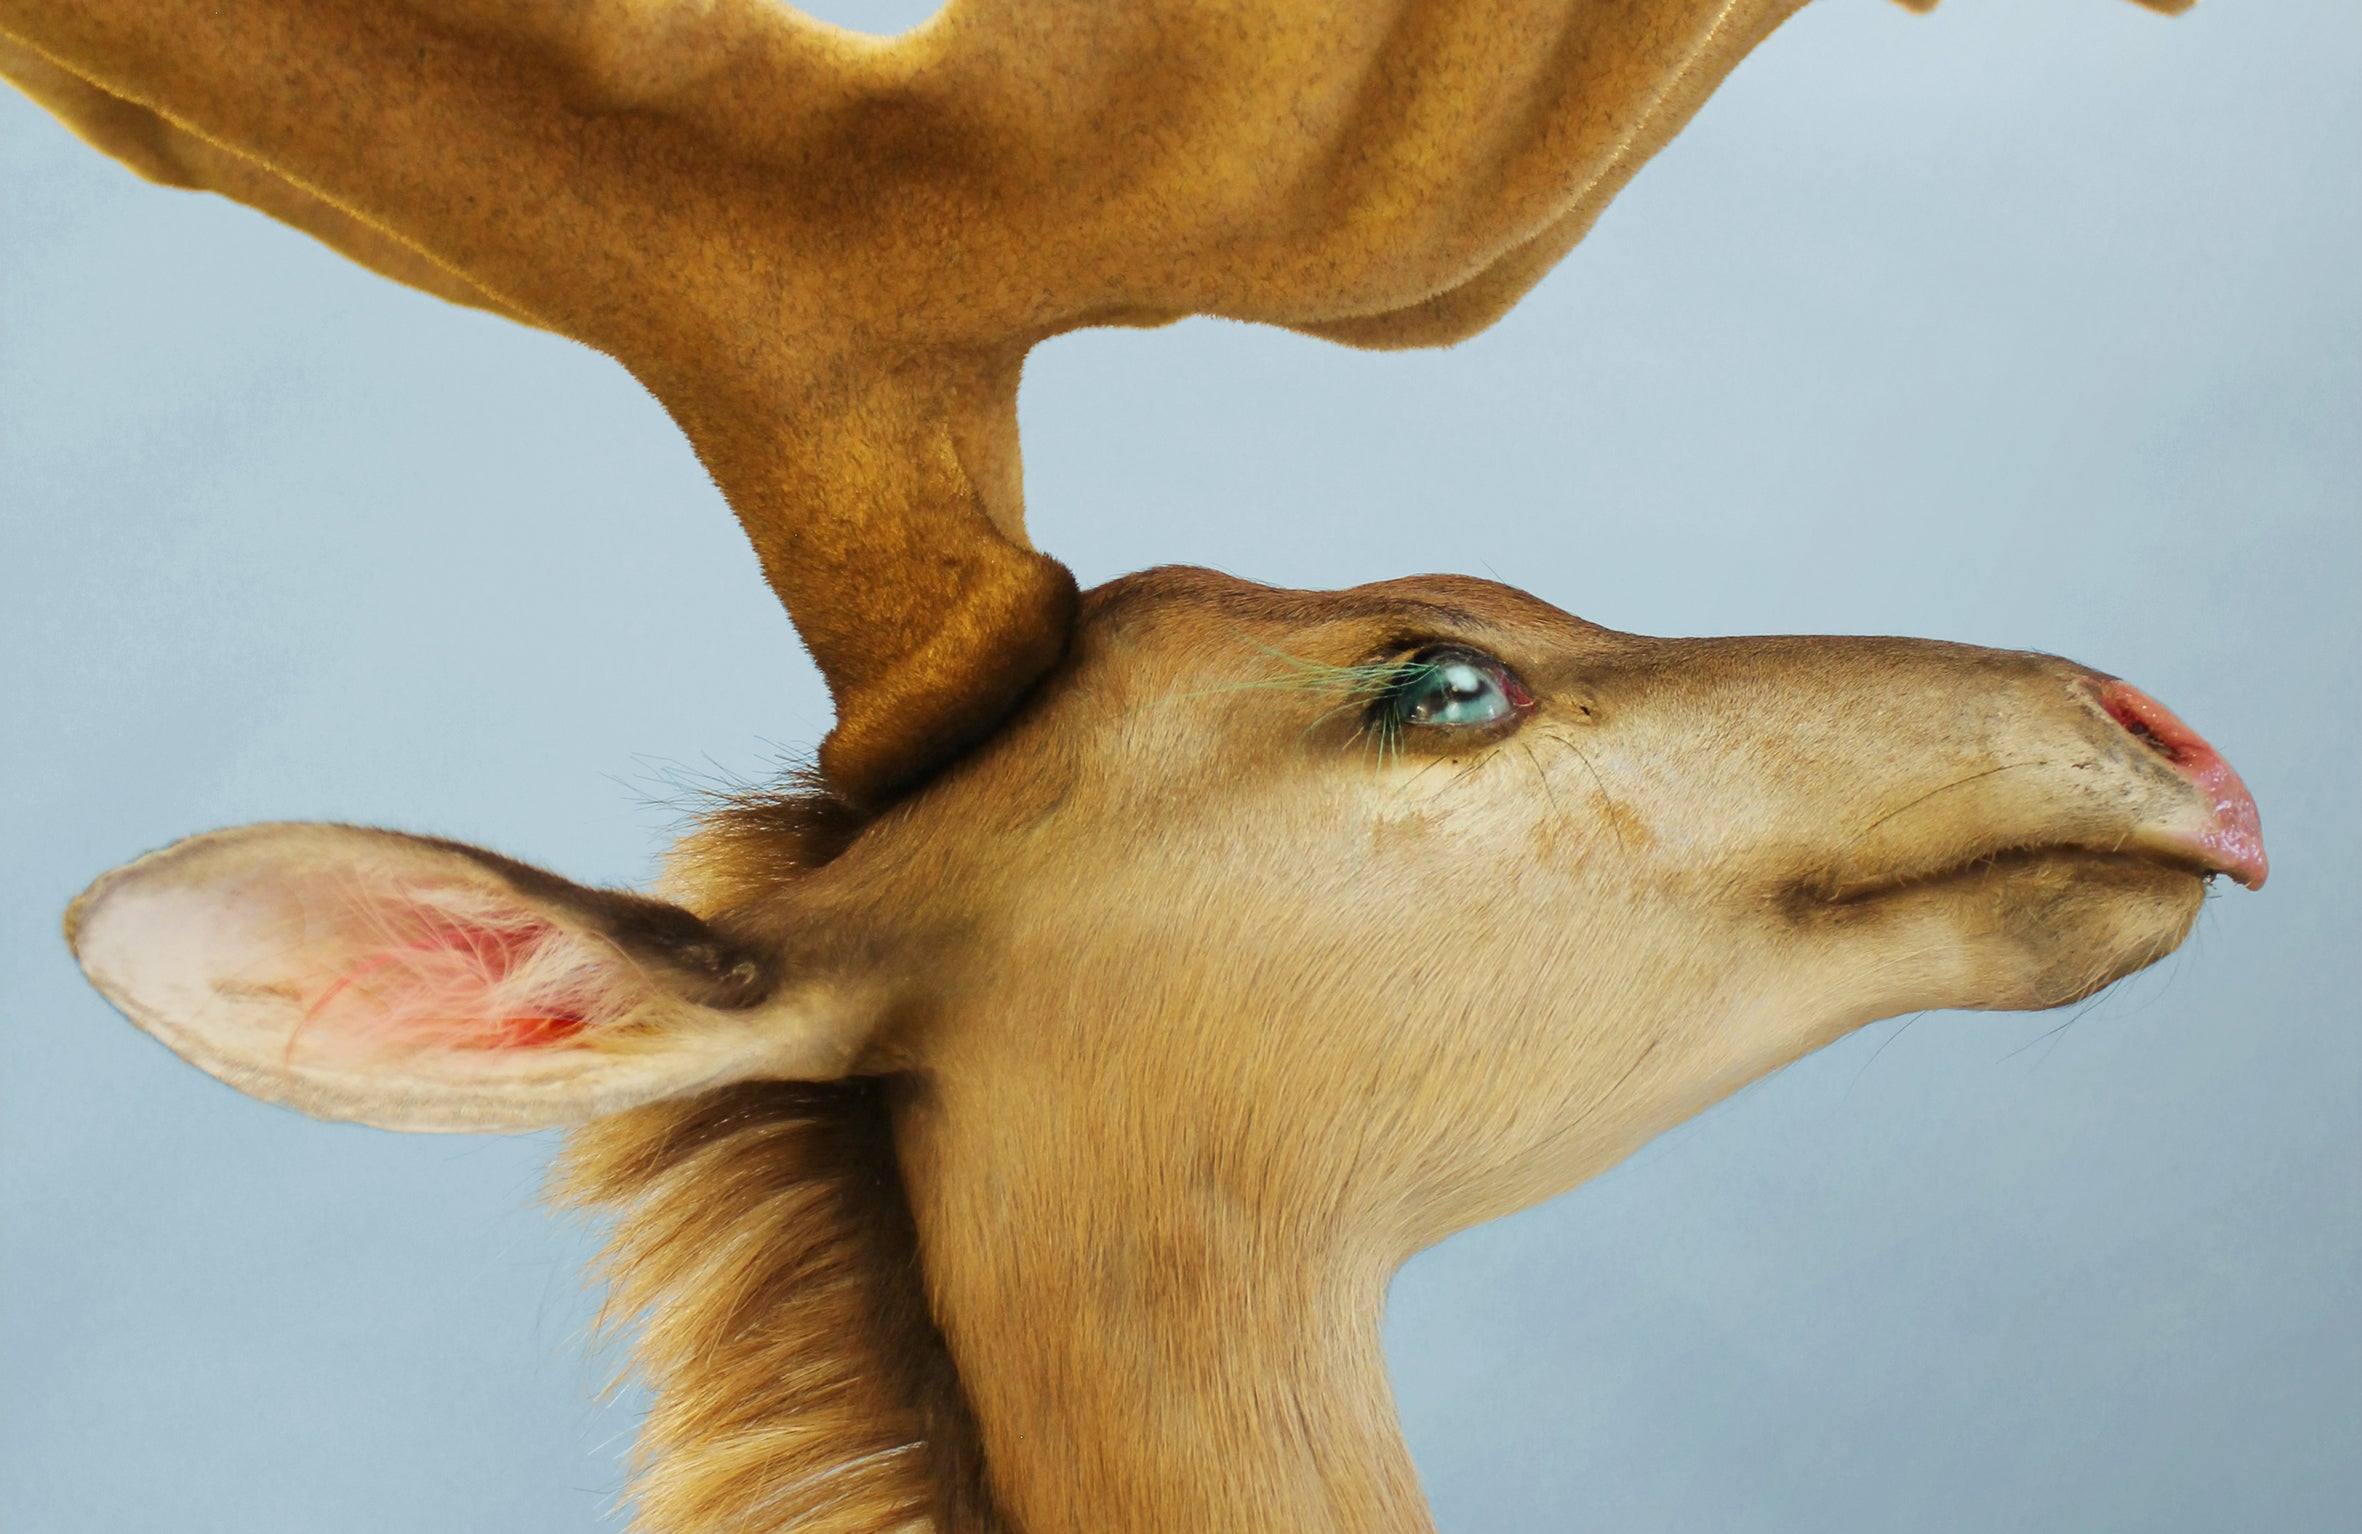 Welcome To The Future Zoo, Home To A Menagerie Of Creepy Mutants